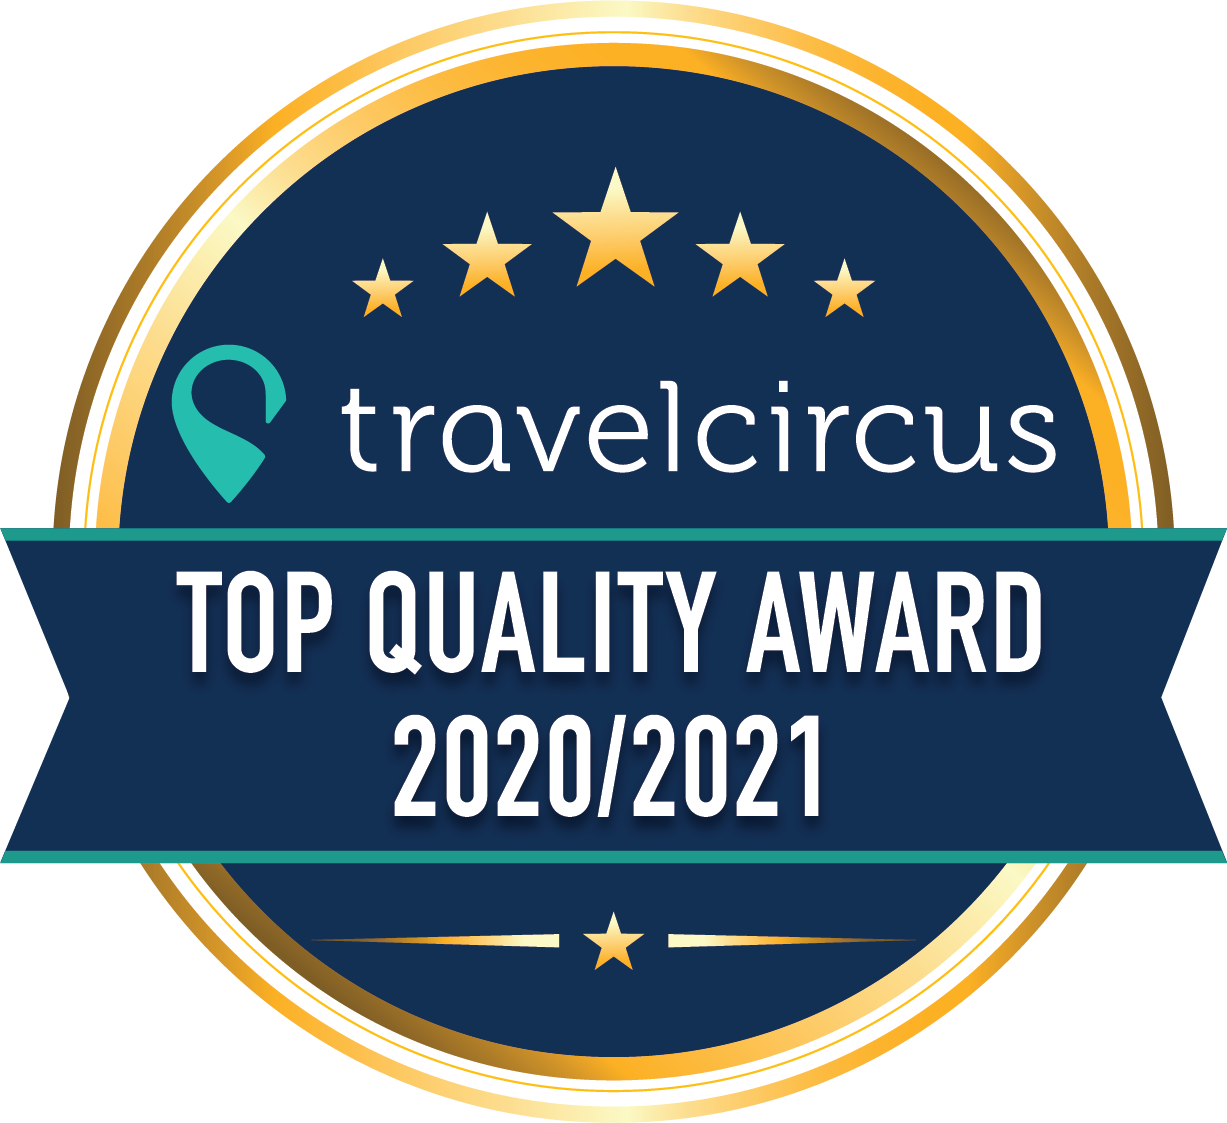 travelcircus_top_quality_award